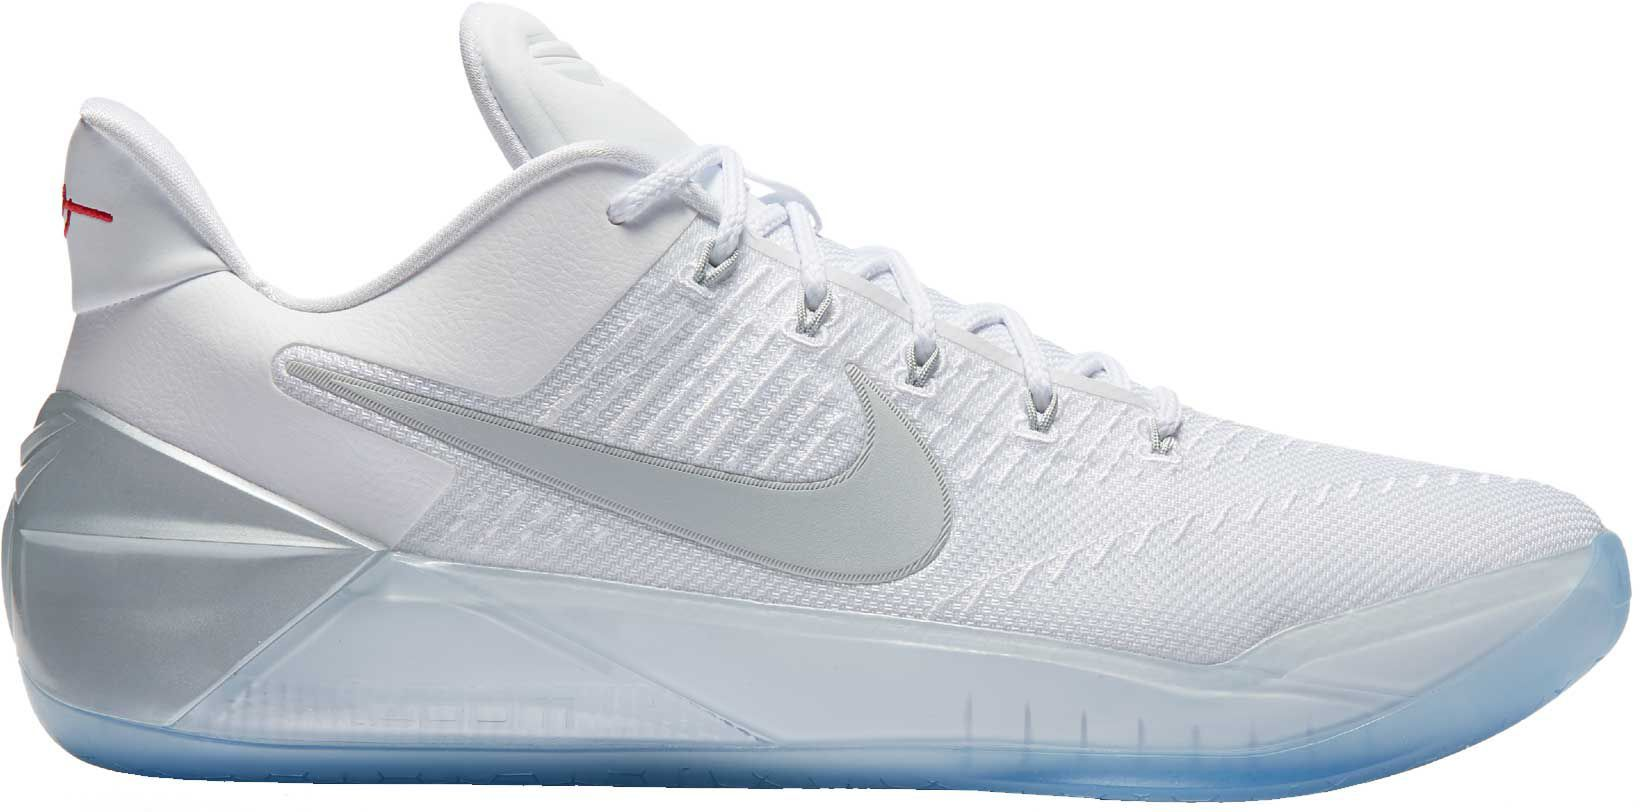 cheap for discount 59696 cbd8b Product Image Nike Men s Kobe A.D. Basketball Shoes · White Black